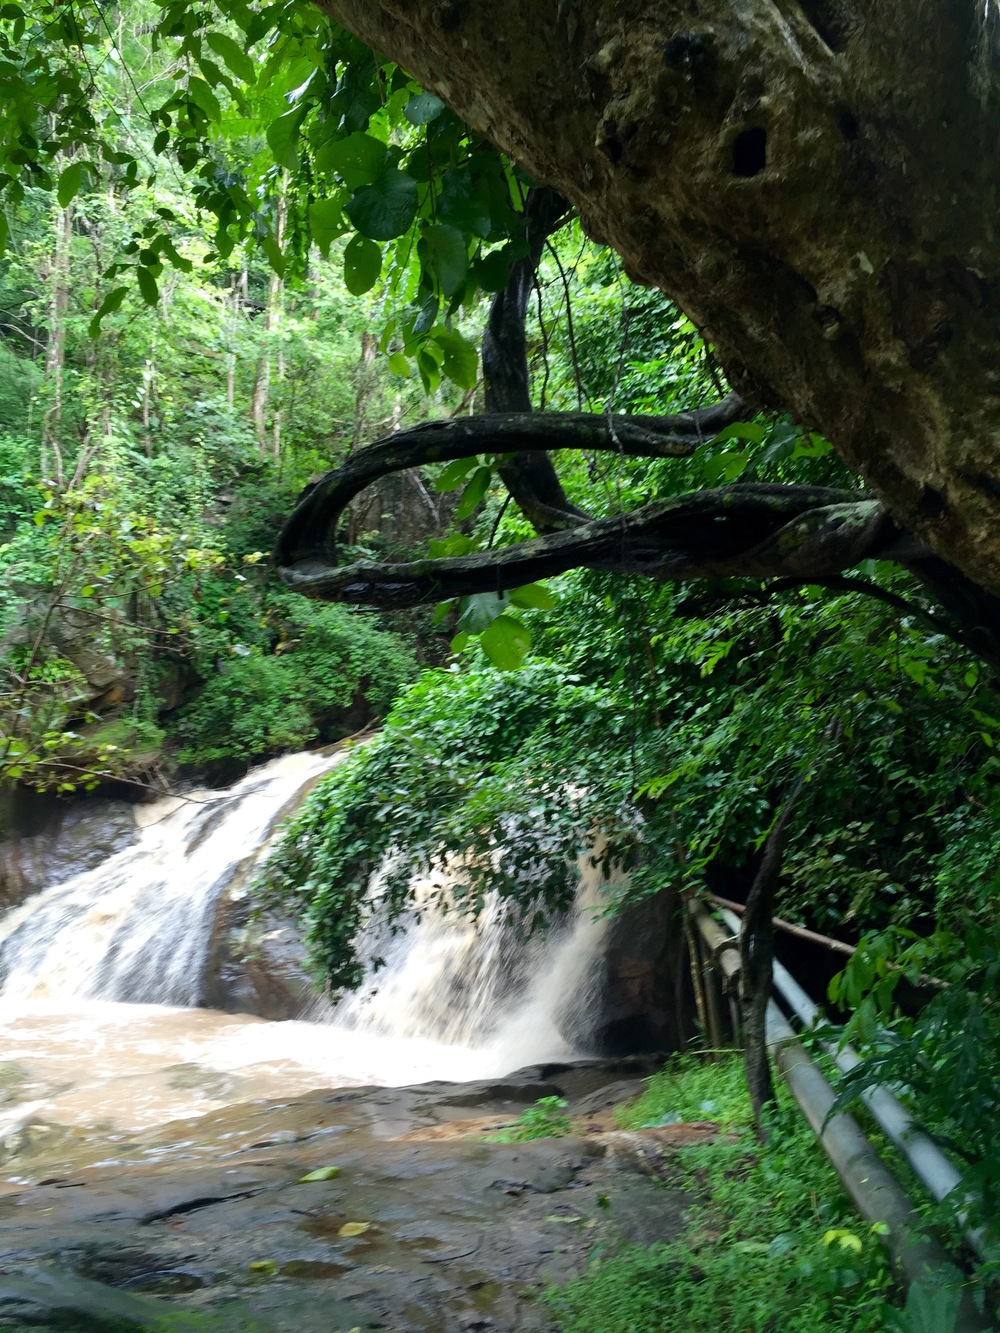 One more favorite pic from Mae Sa Waterfall Park